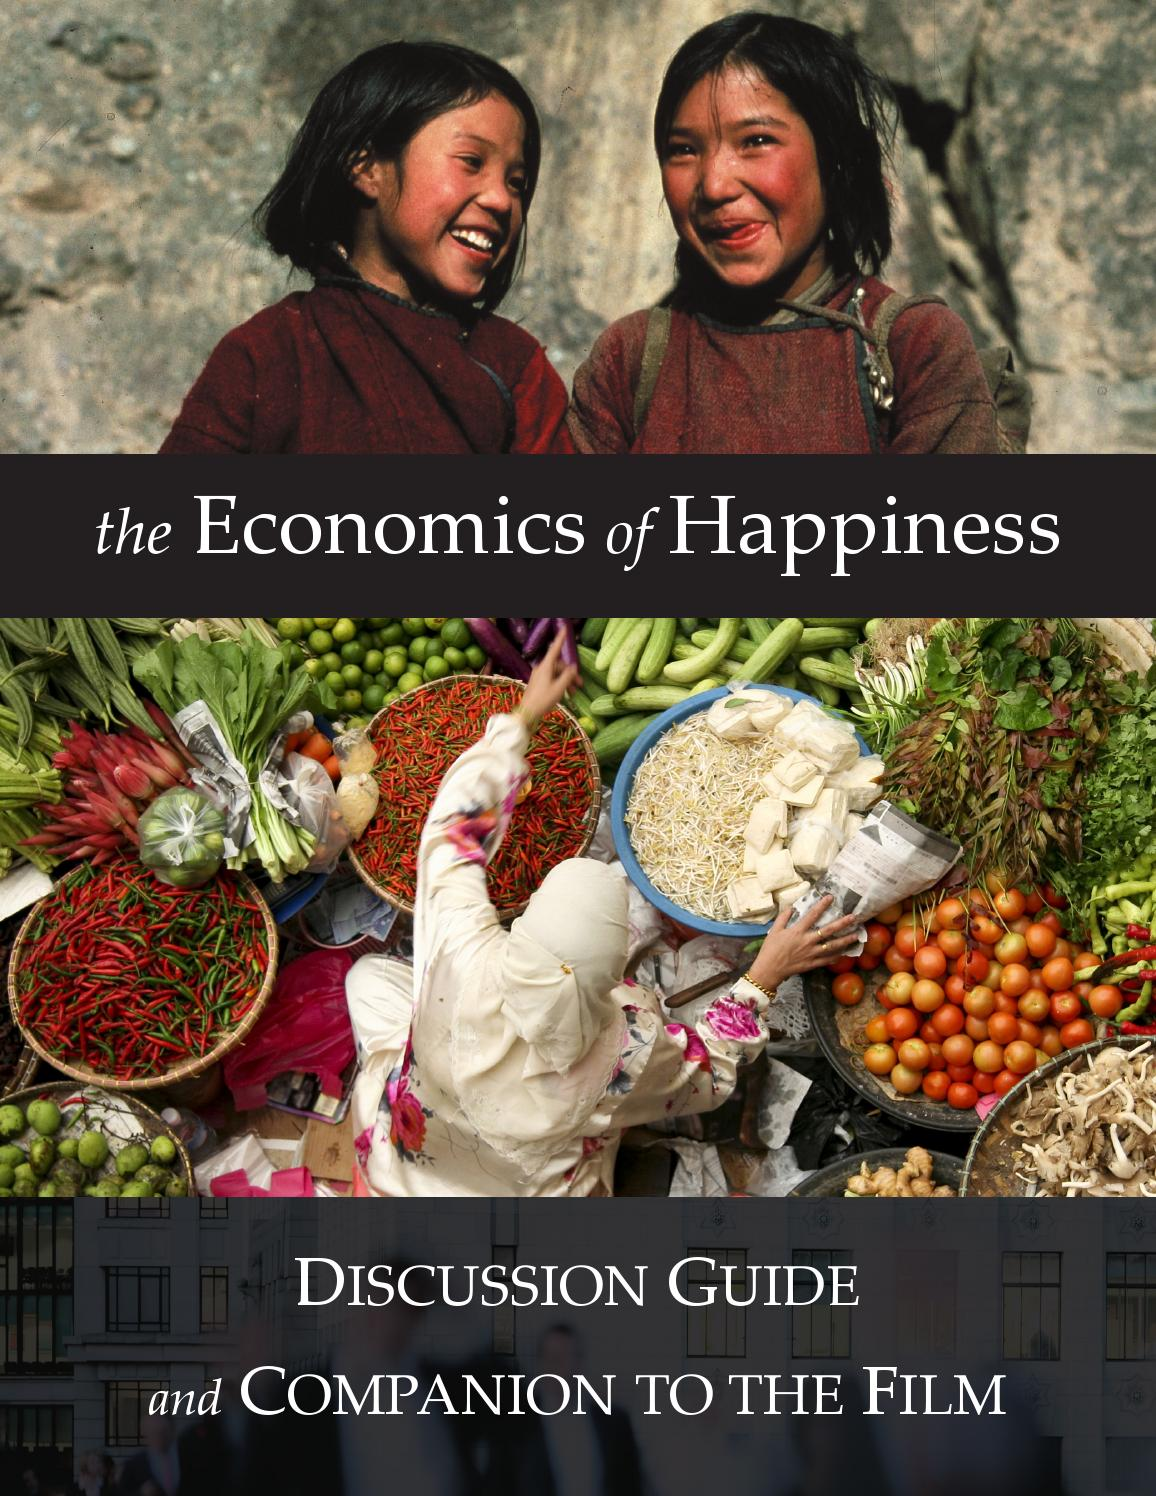 economics of happiness Sharing economics of happiness shining in interfaith, intercommunity sharing curated by the santa fe interfaith leadership alliance 7:20 8:05 keynotemichael tellinger south african author and politician, proponent.